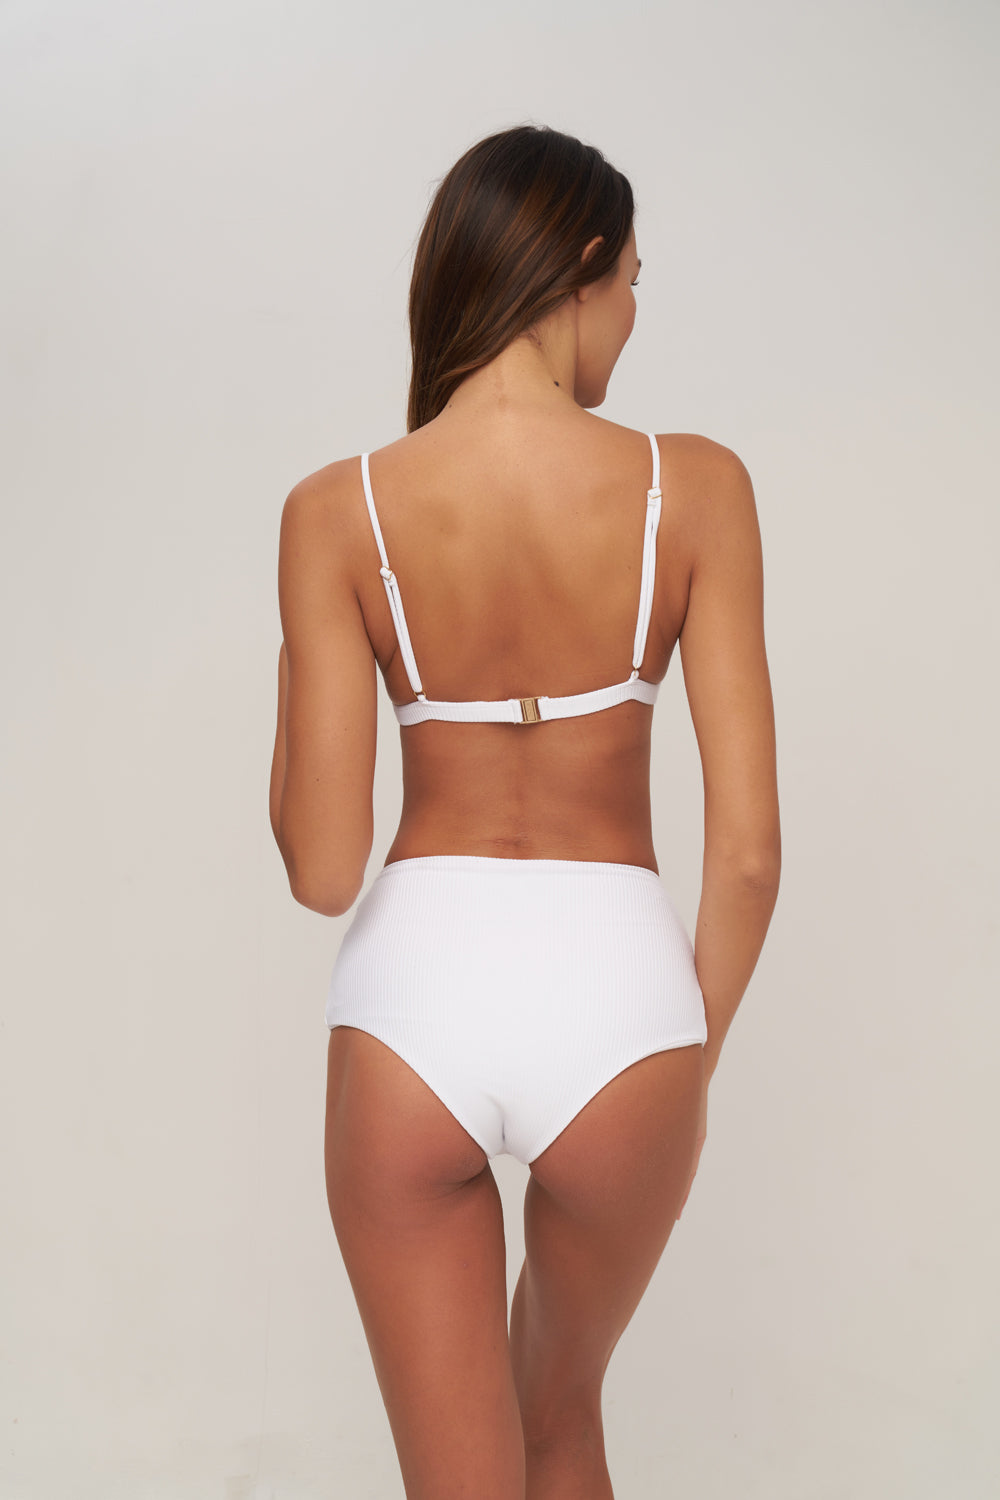 Storm Swimwear - Cannes - High Waist Bikini Bottom in Milk white rib